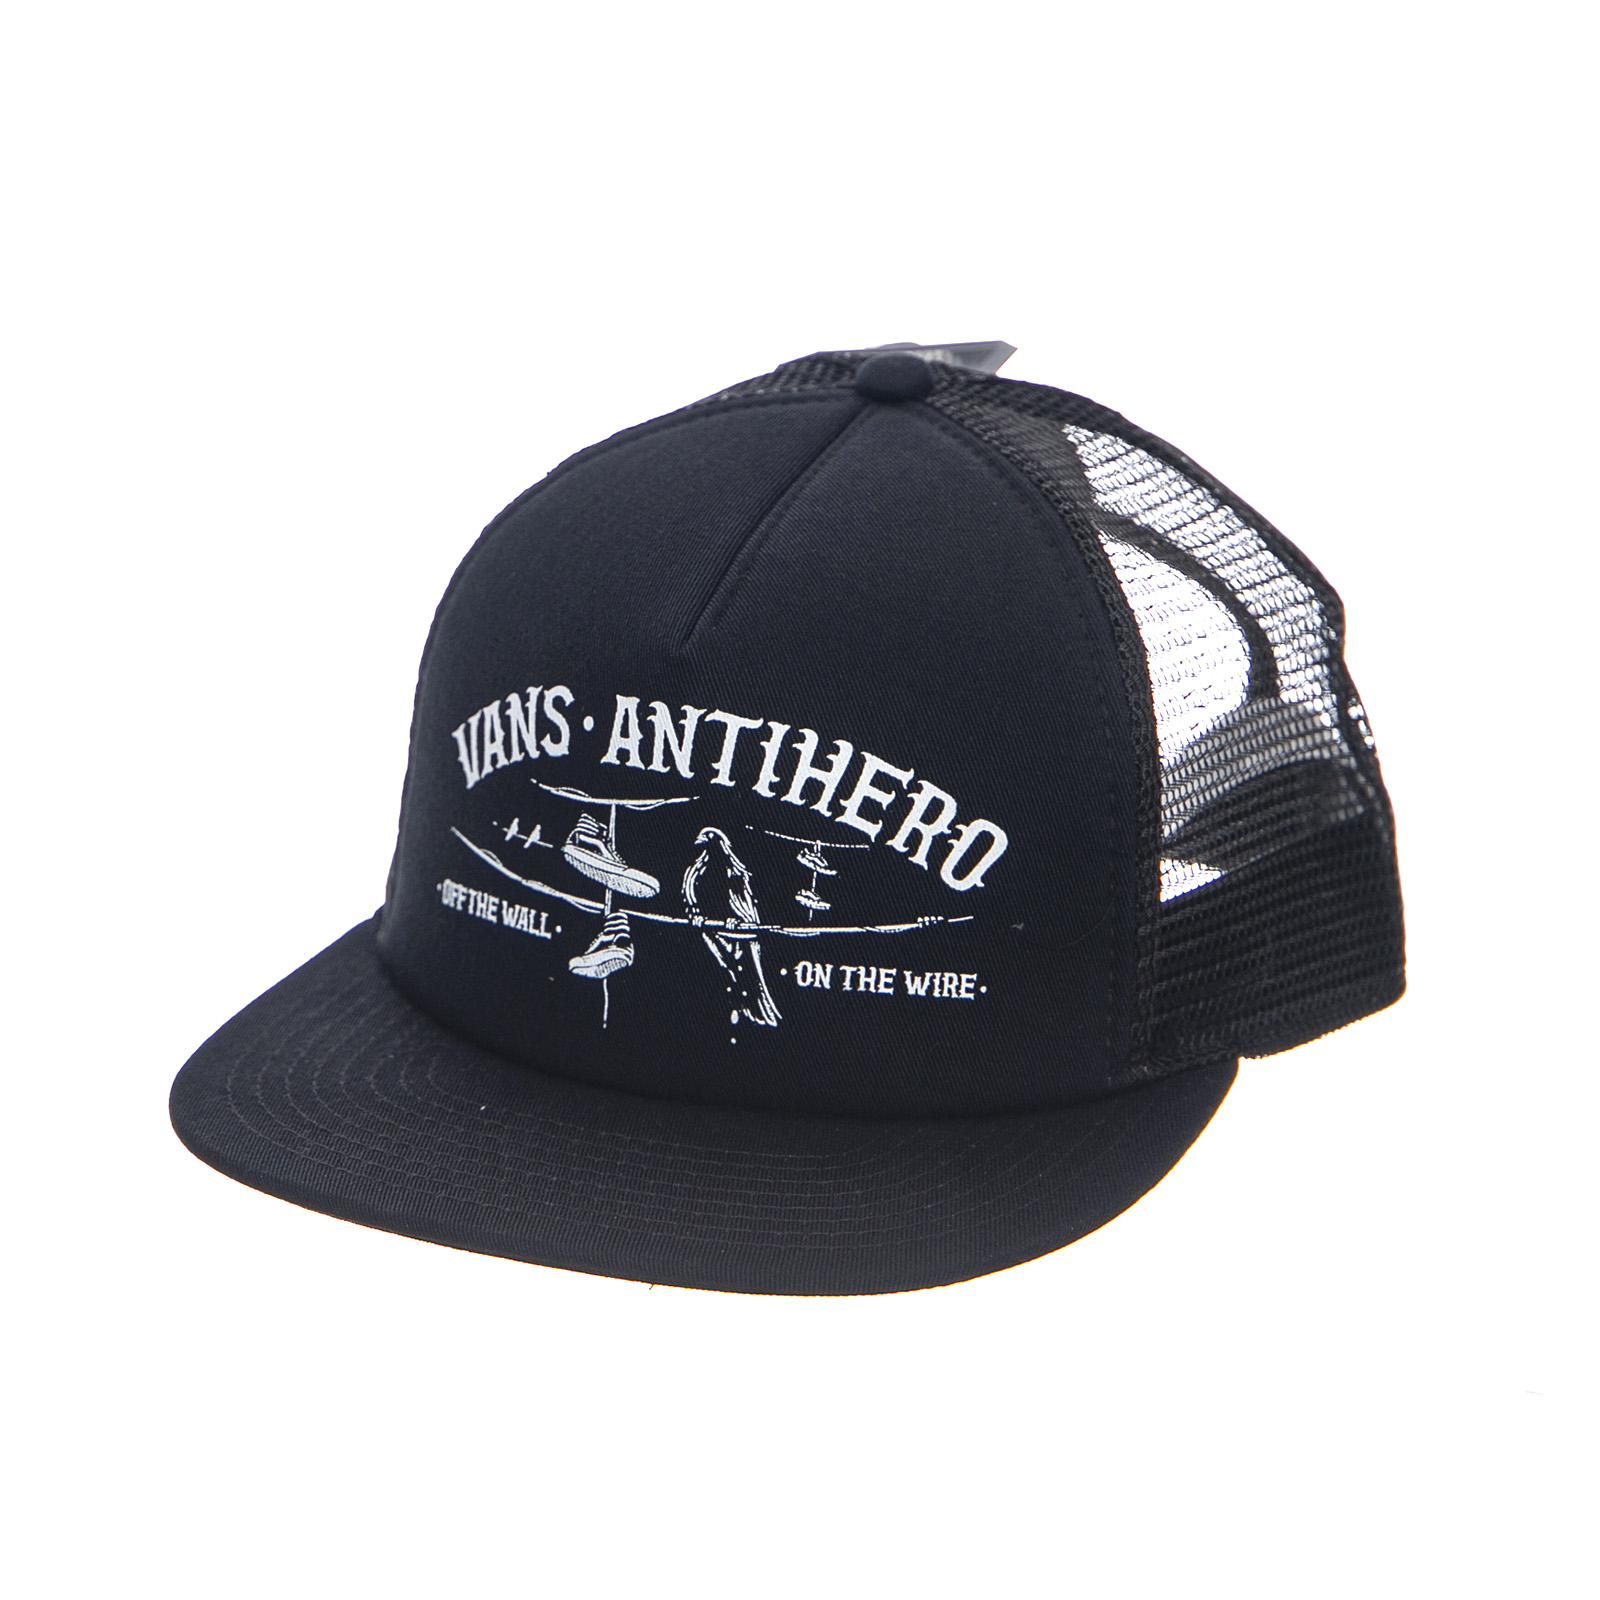 58f0272f6bb08 Vans Mn Vans X Antihero Wired Trucker - Black - Cappellino Con Visier Nero